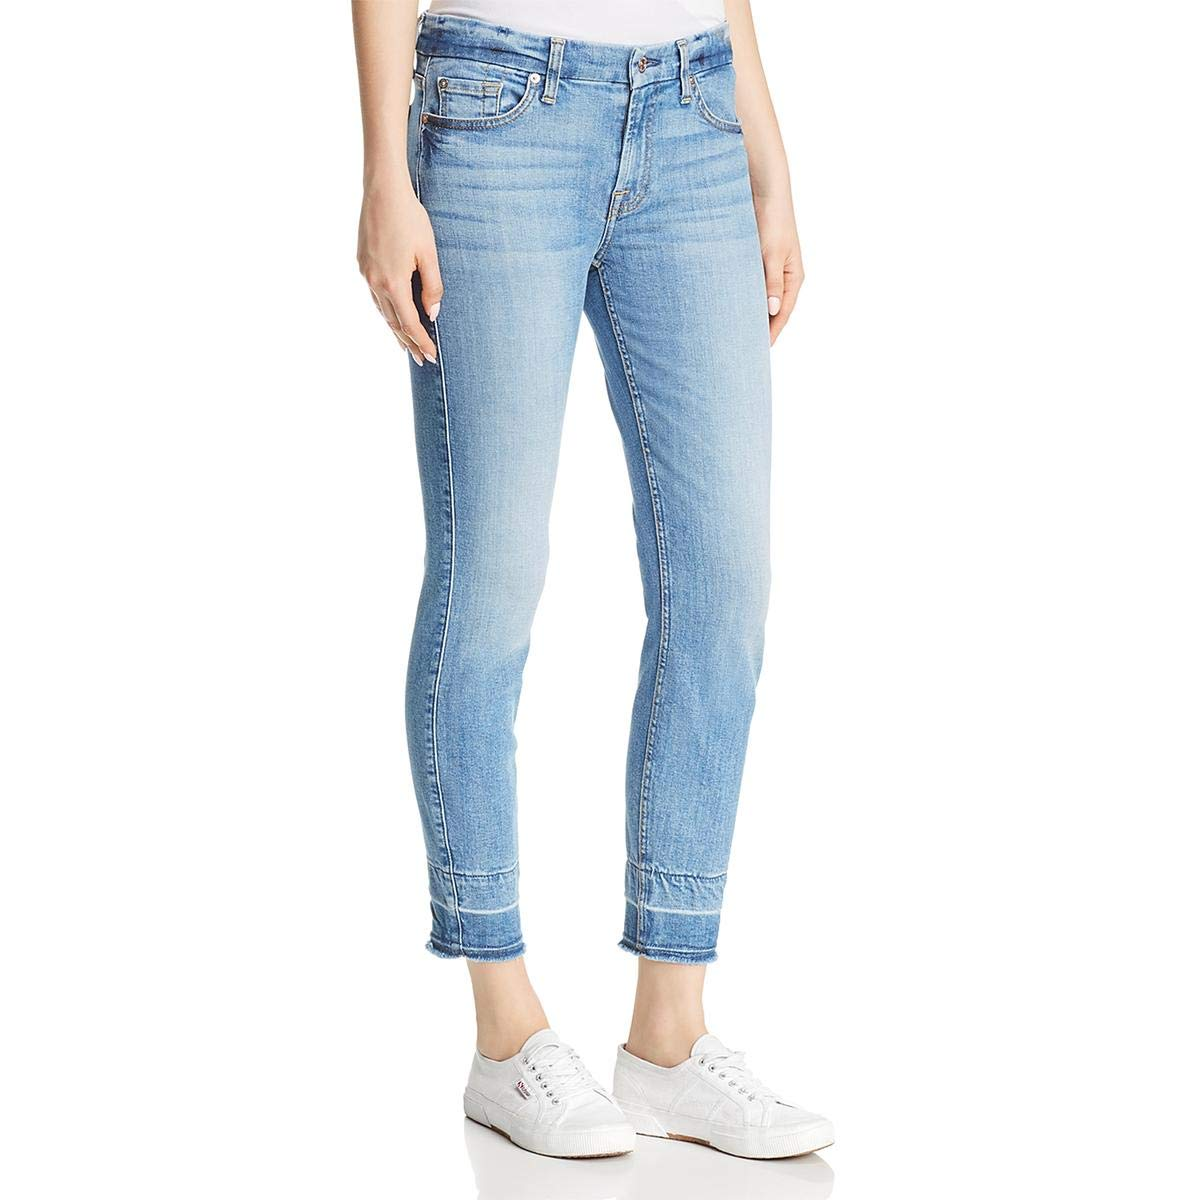 7 For All Mankind Women's Ankle Skinny Mid Rise Jeans